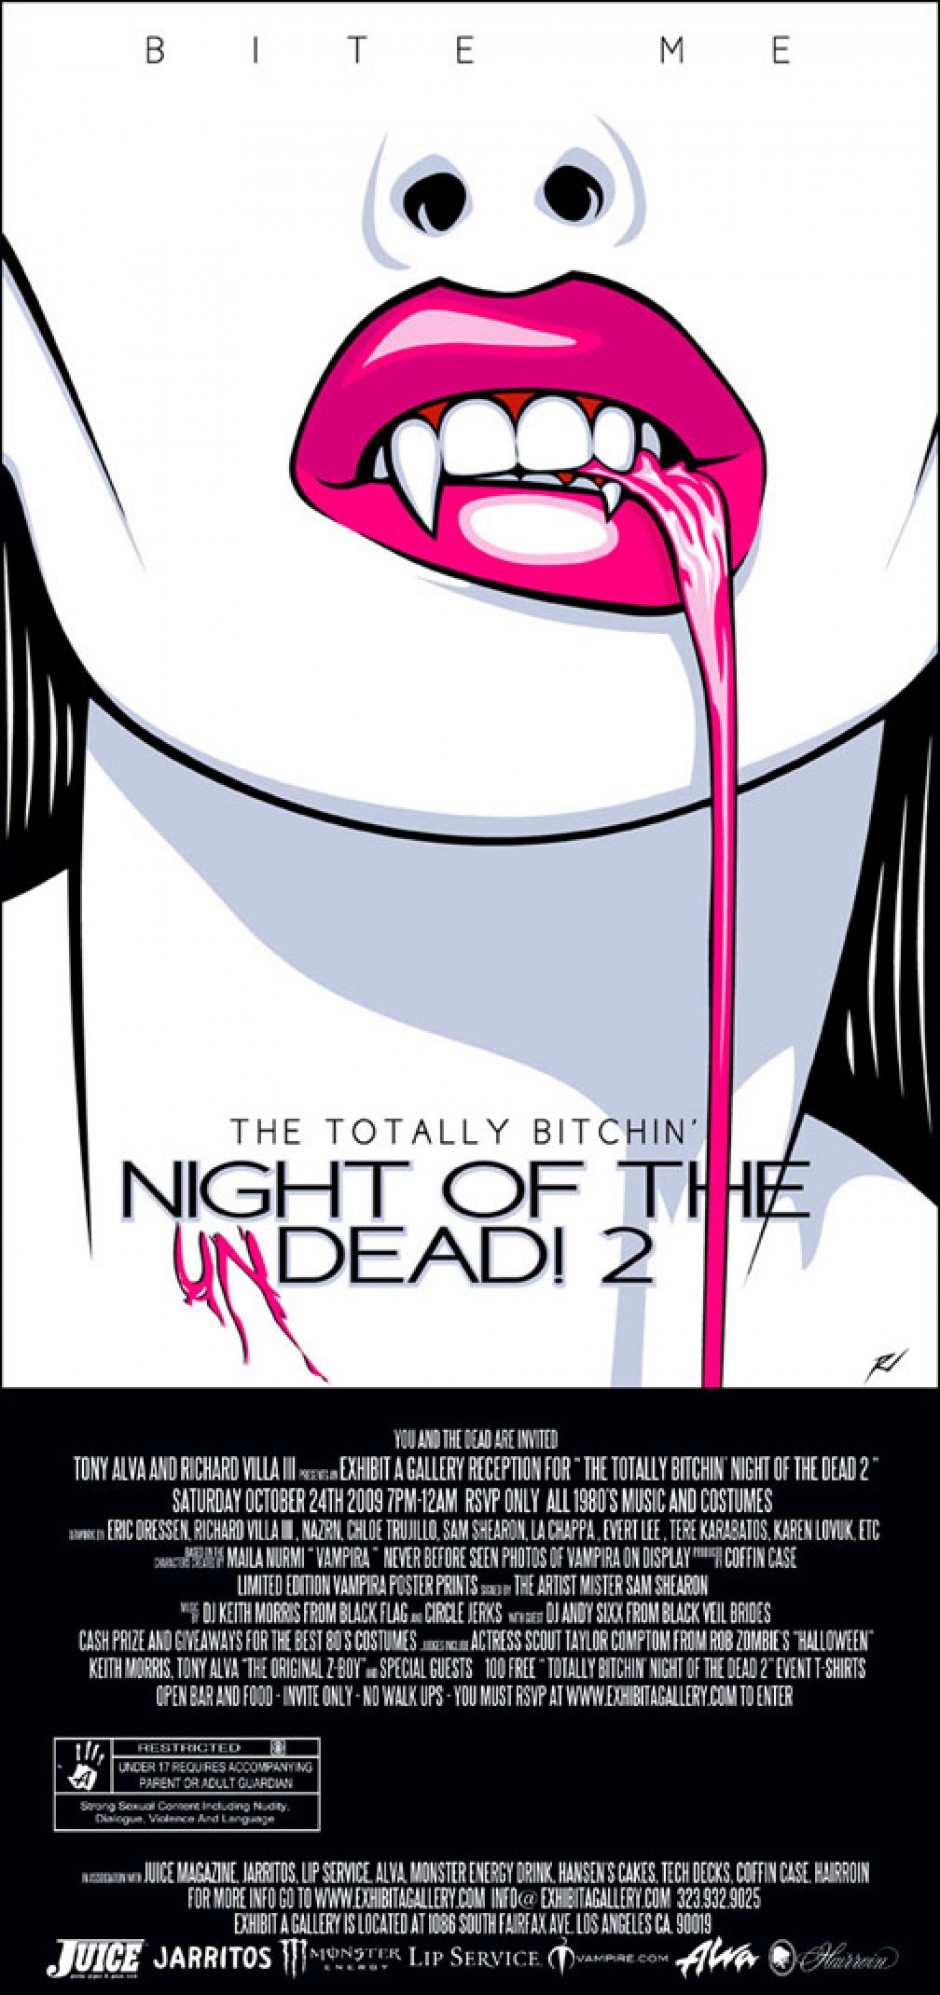 TOTALLY BITCHIN NIGHT OF THE DEAD 2